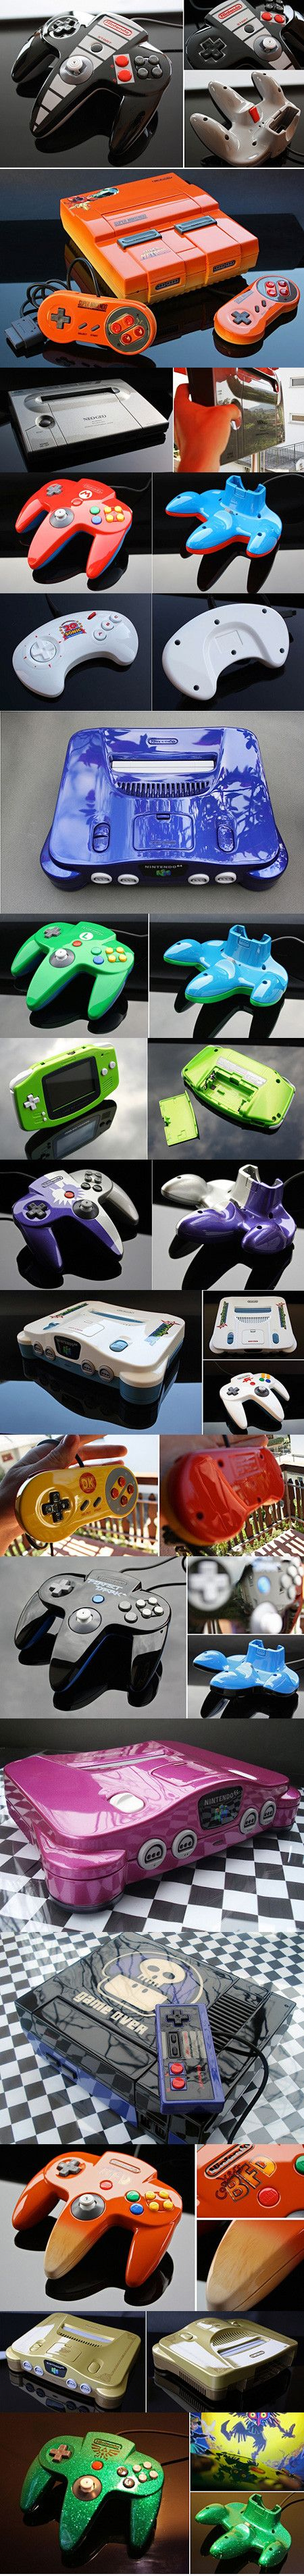 DeviantArt user Zoki64 breaks away from the boring classic video game console designs by giving them fresh new paint jobs.